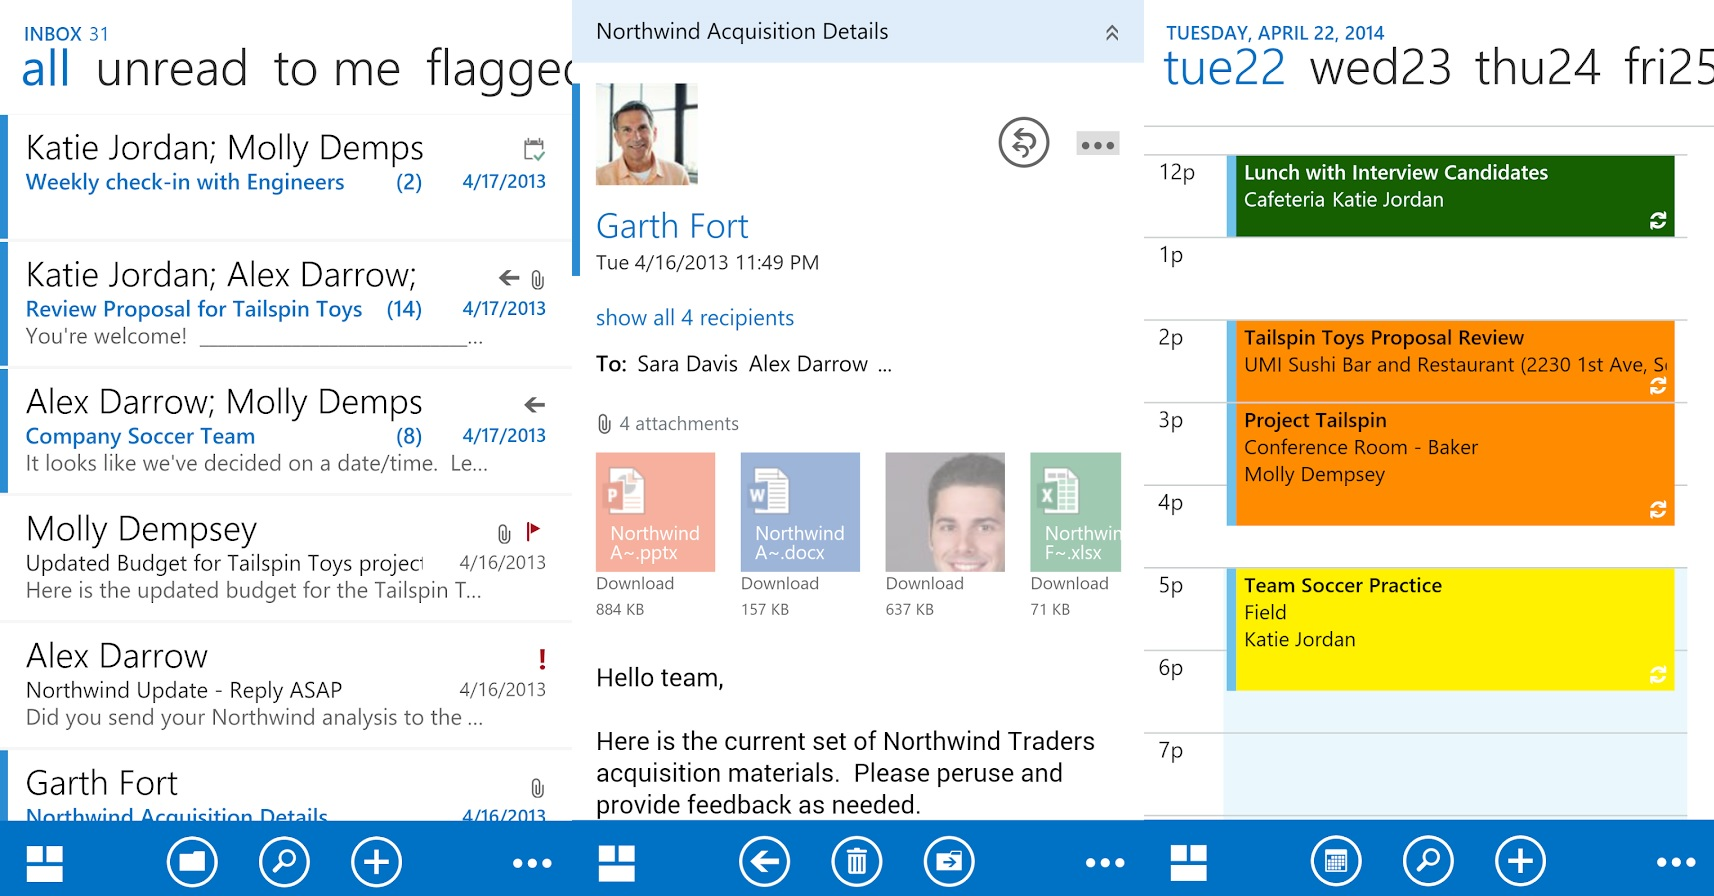 Microsoft is retiring OWA apps for iOS and Android and users aren't happy about it